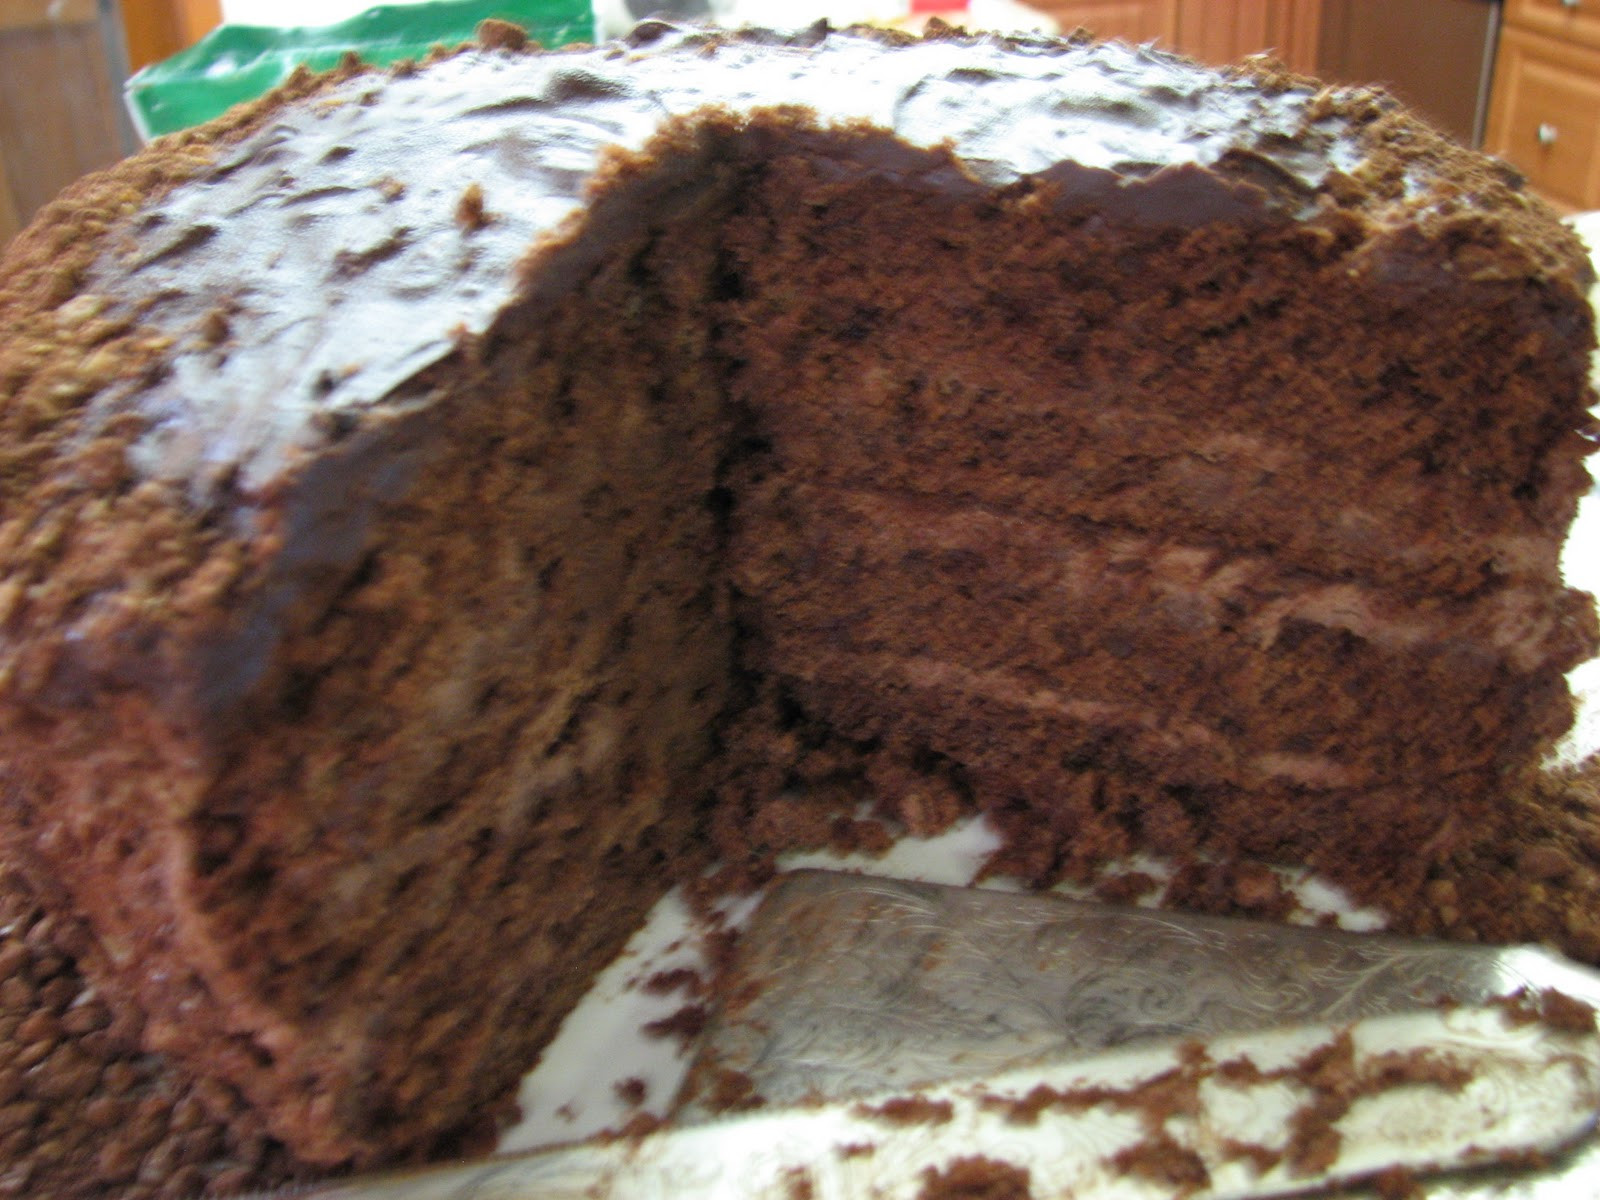 Chocolate Cake For Breakfast  Cooking 4 1 1 EMERGENCY CHOCOLATE CAKE